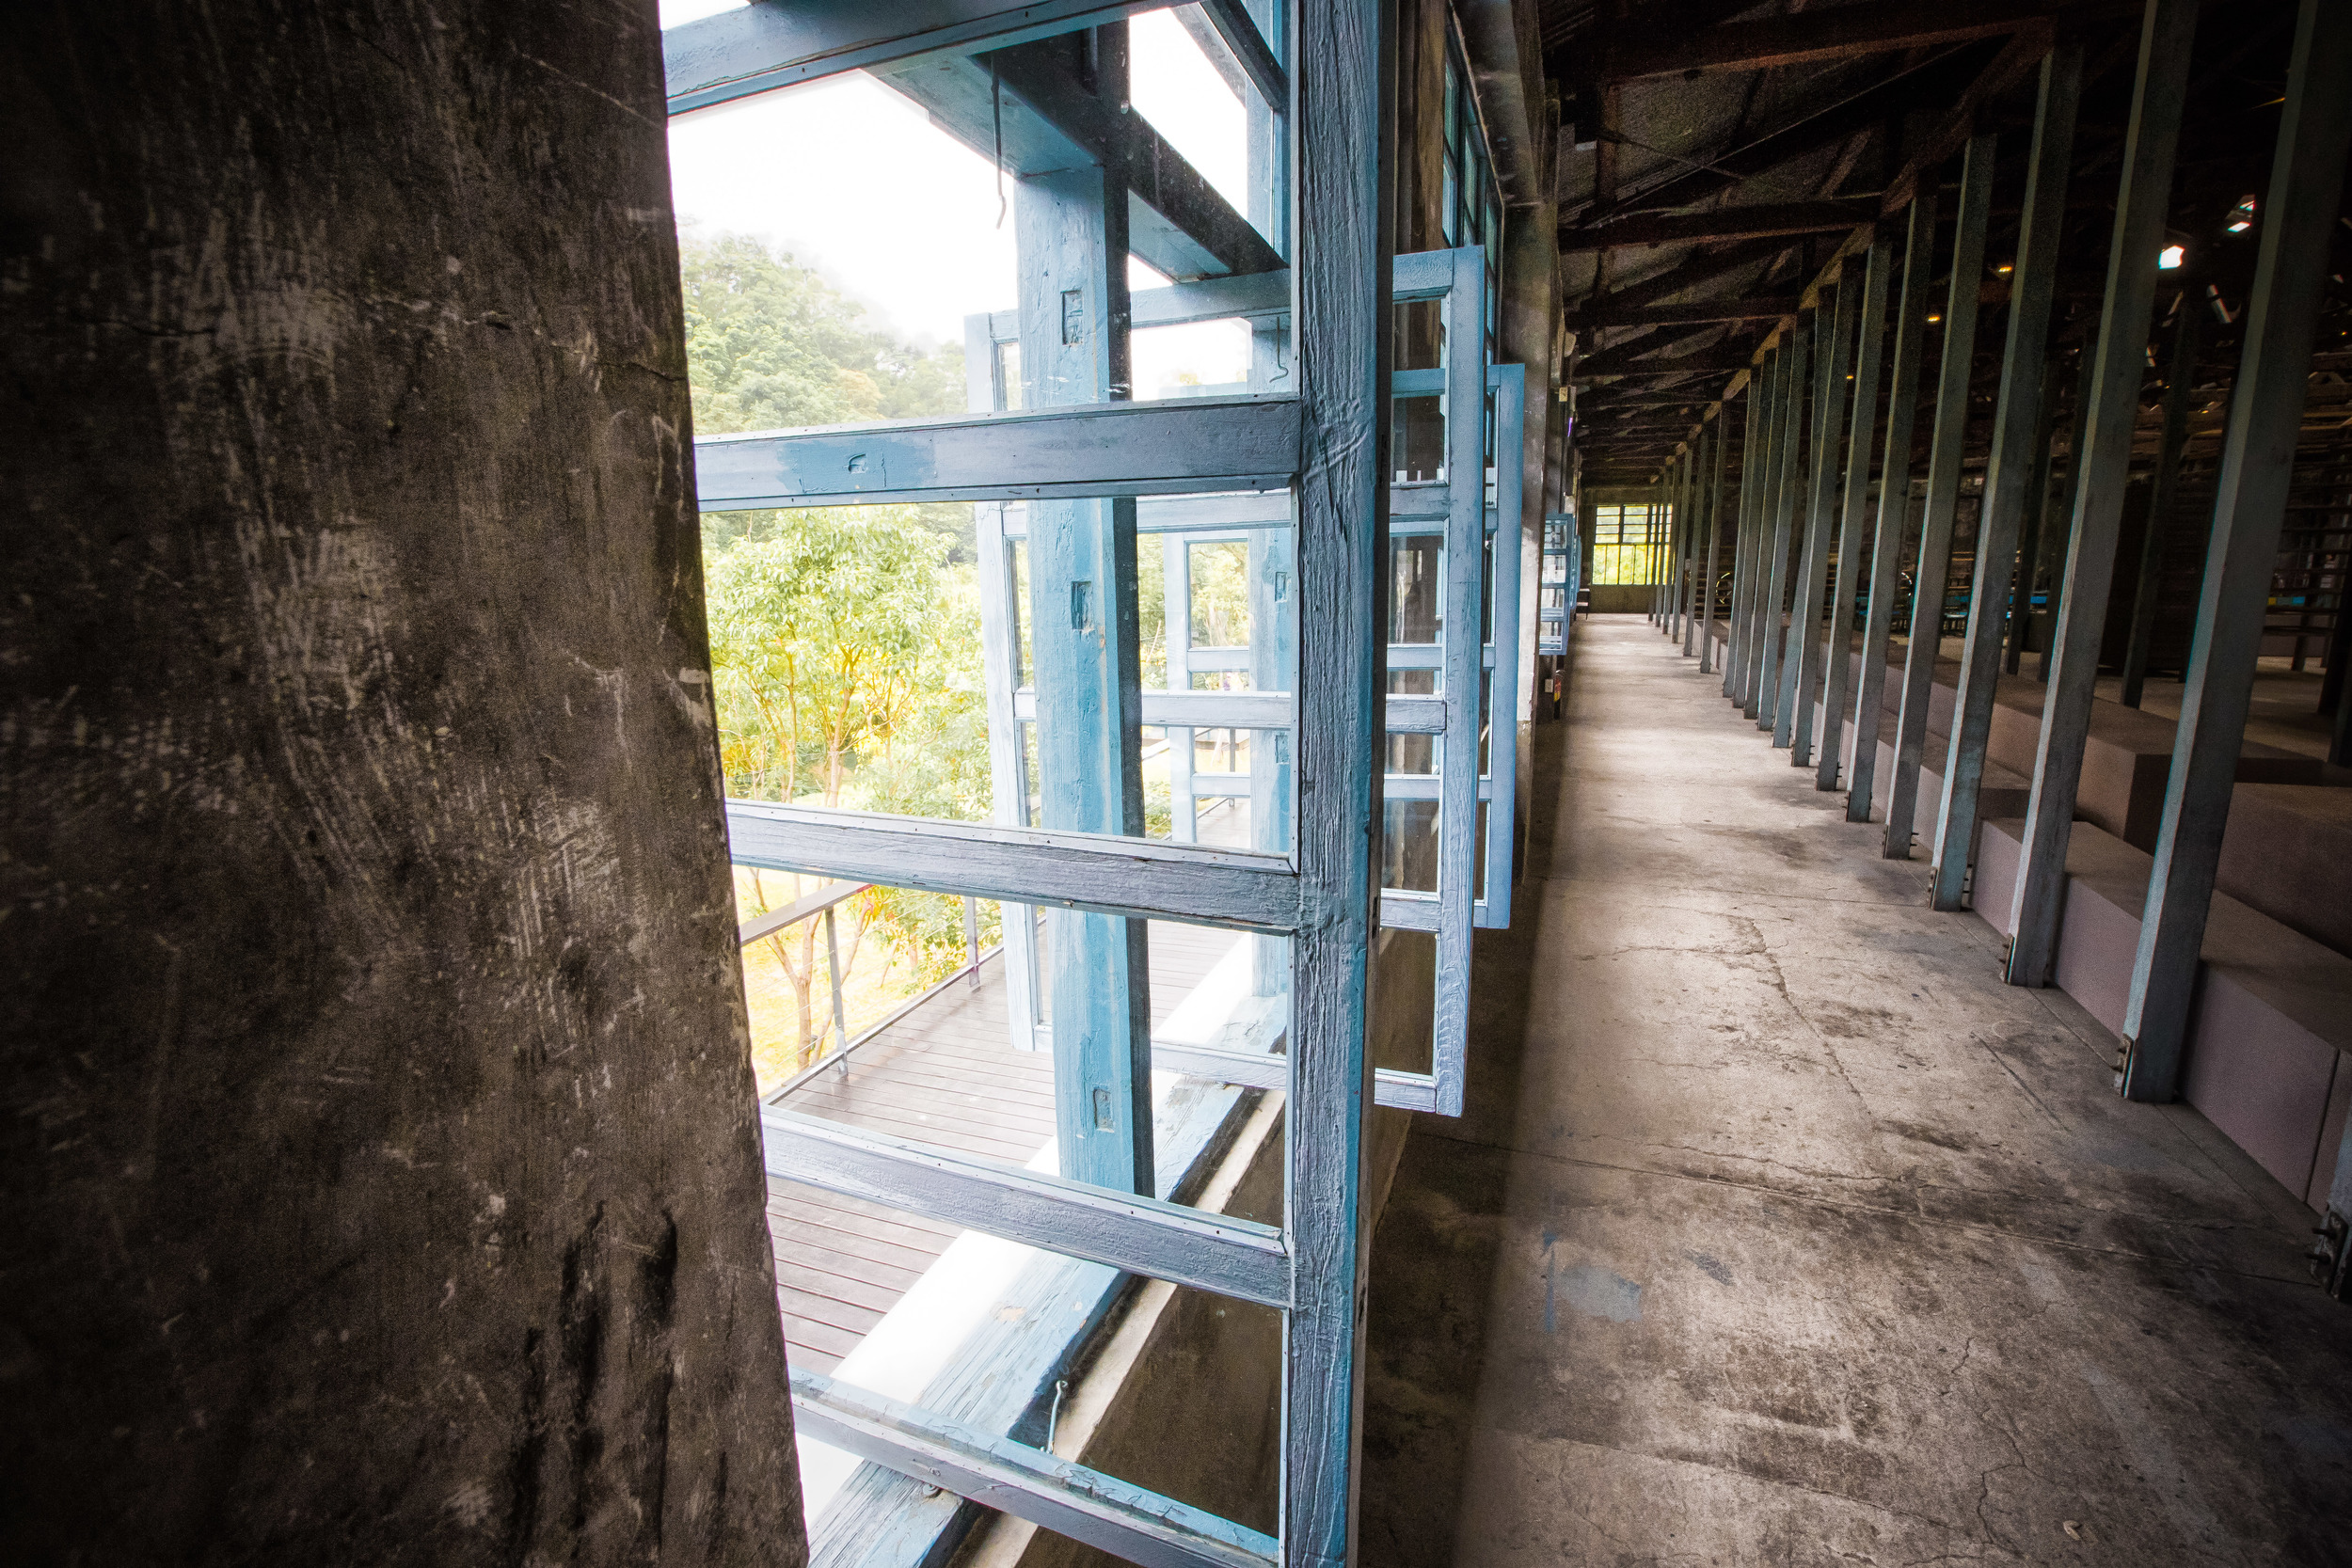 Lots of windows to allow air circulation for the tea to dry